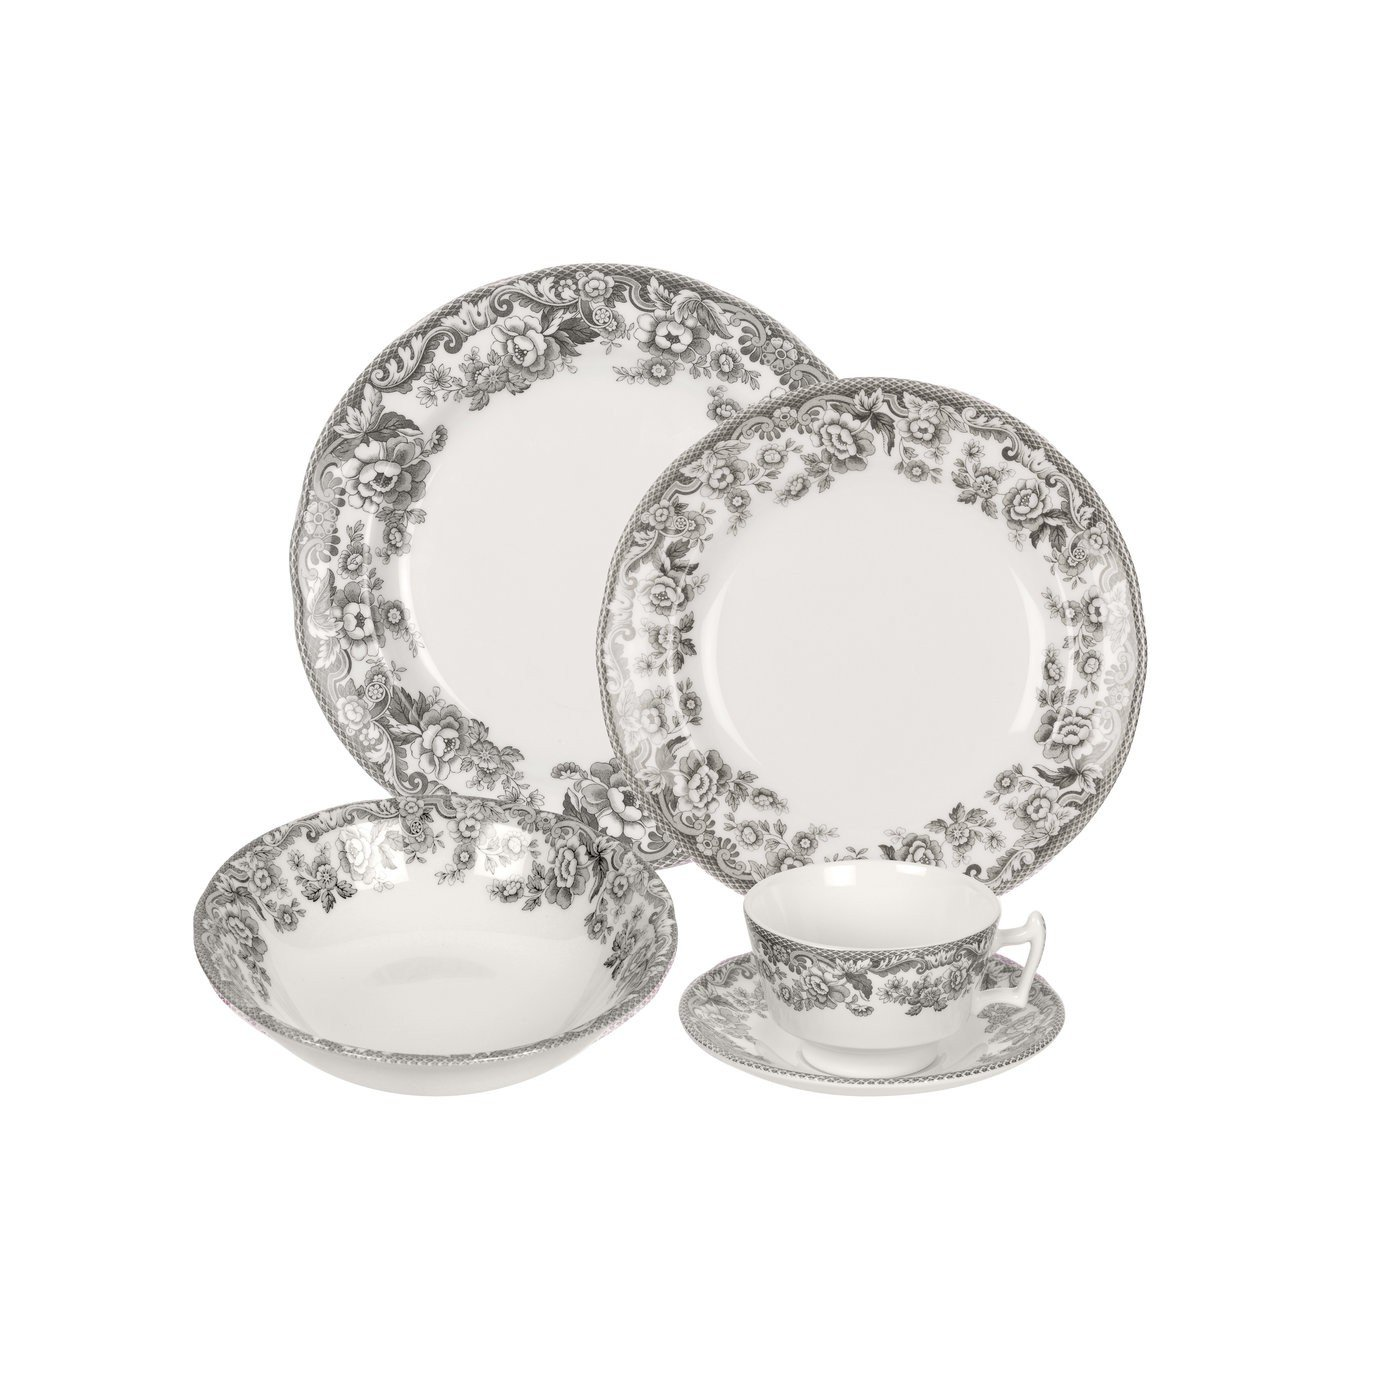 Spode Delamere Rural 5-piece Place Setting